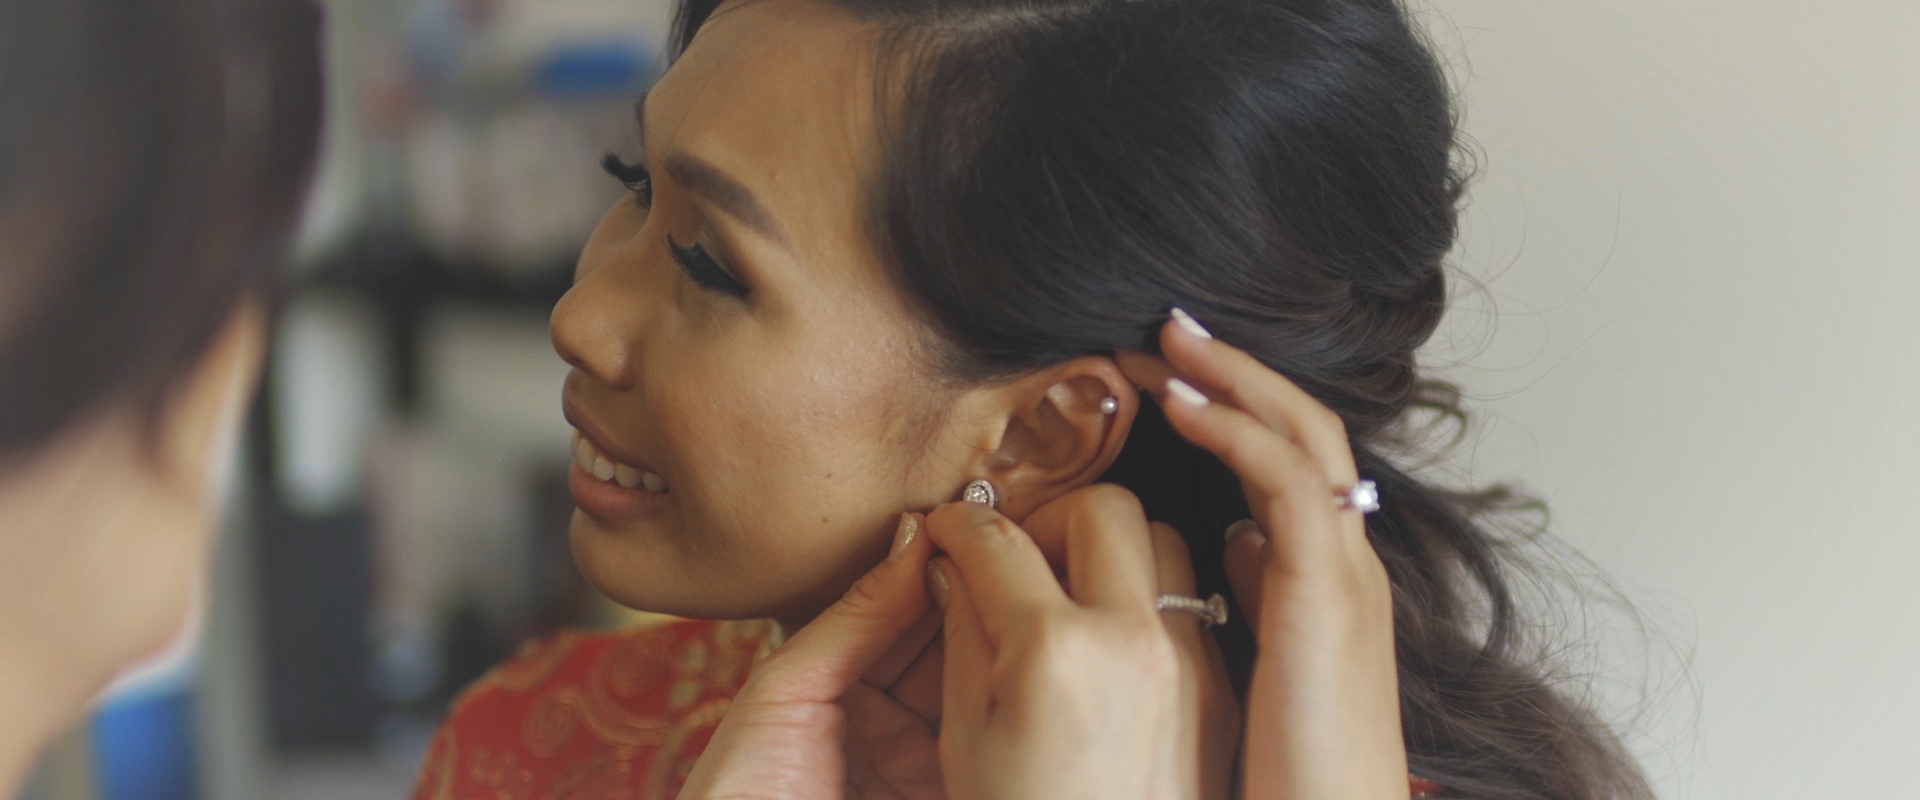 An image of a bride getting ready for her wedding day; taken from a Toronto Wedding Video